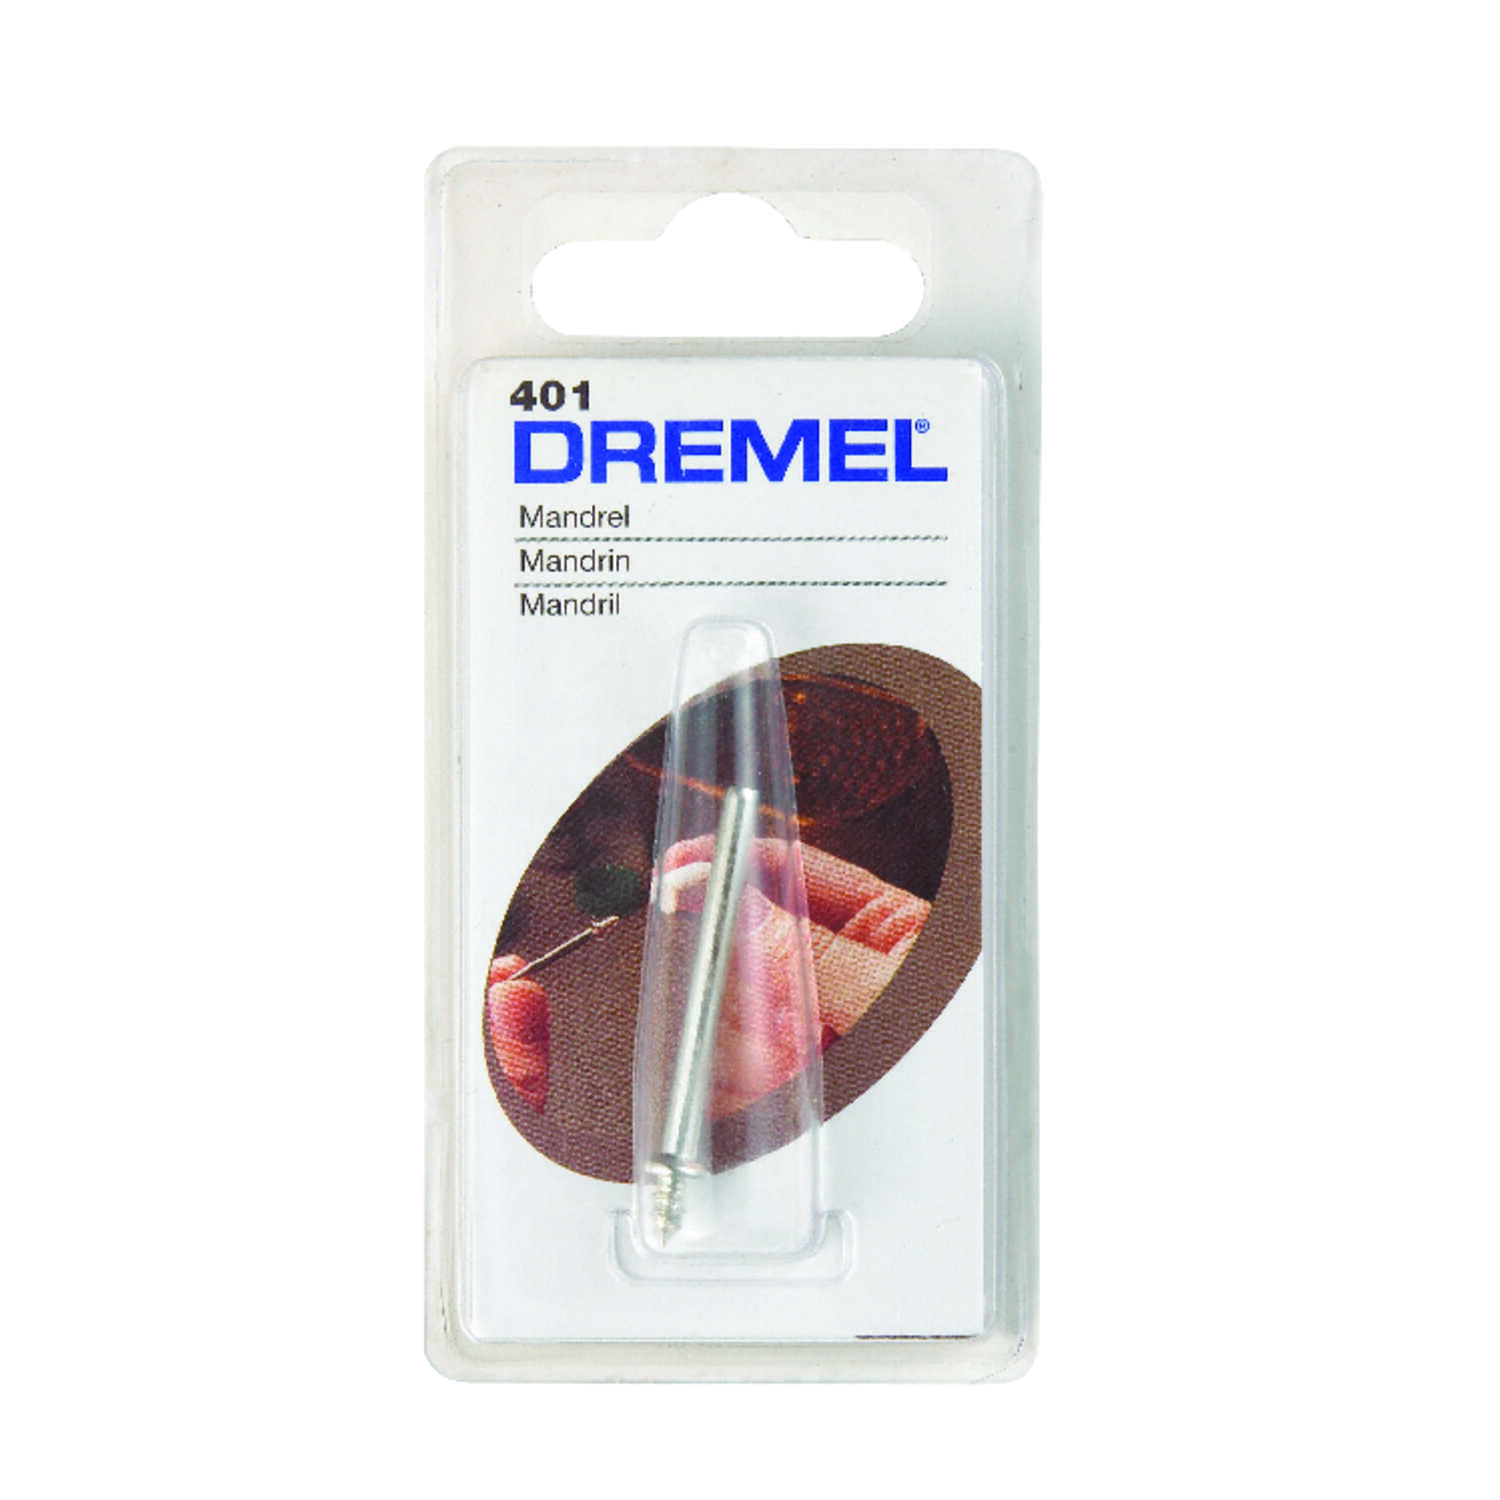 Dremel  1/2 in   x 3 in. L x 1/8 in. Dia. High Speed Steel  Mandrel  1 pk